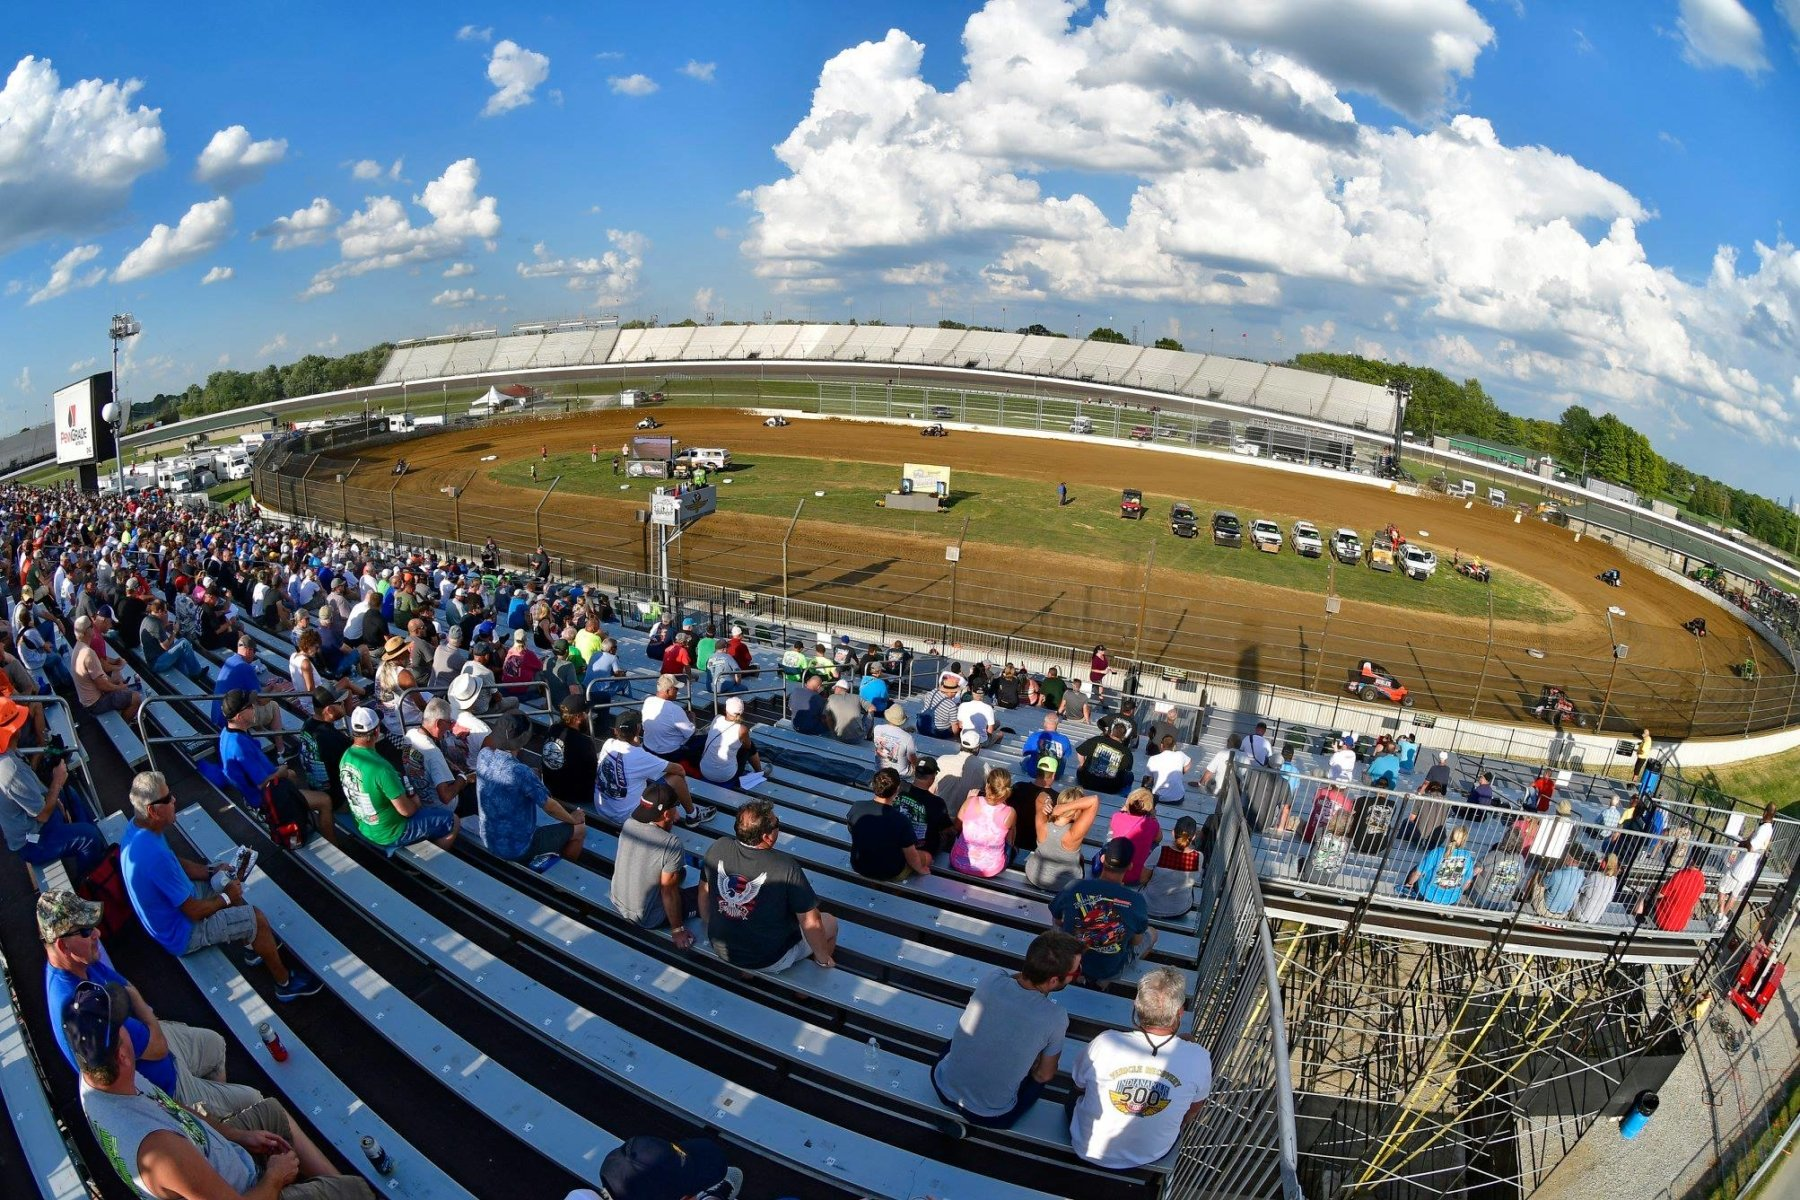 The Dirt Track at Indianapolis